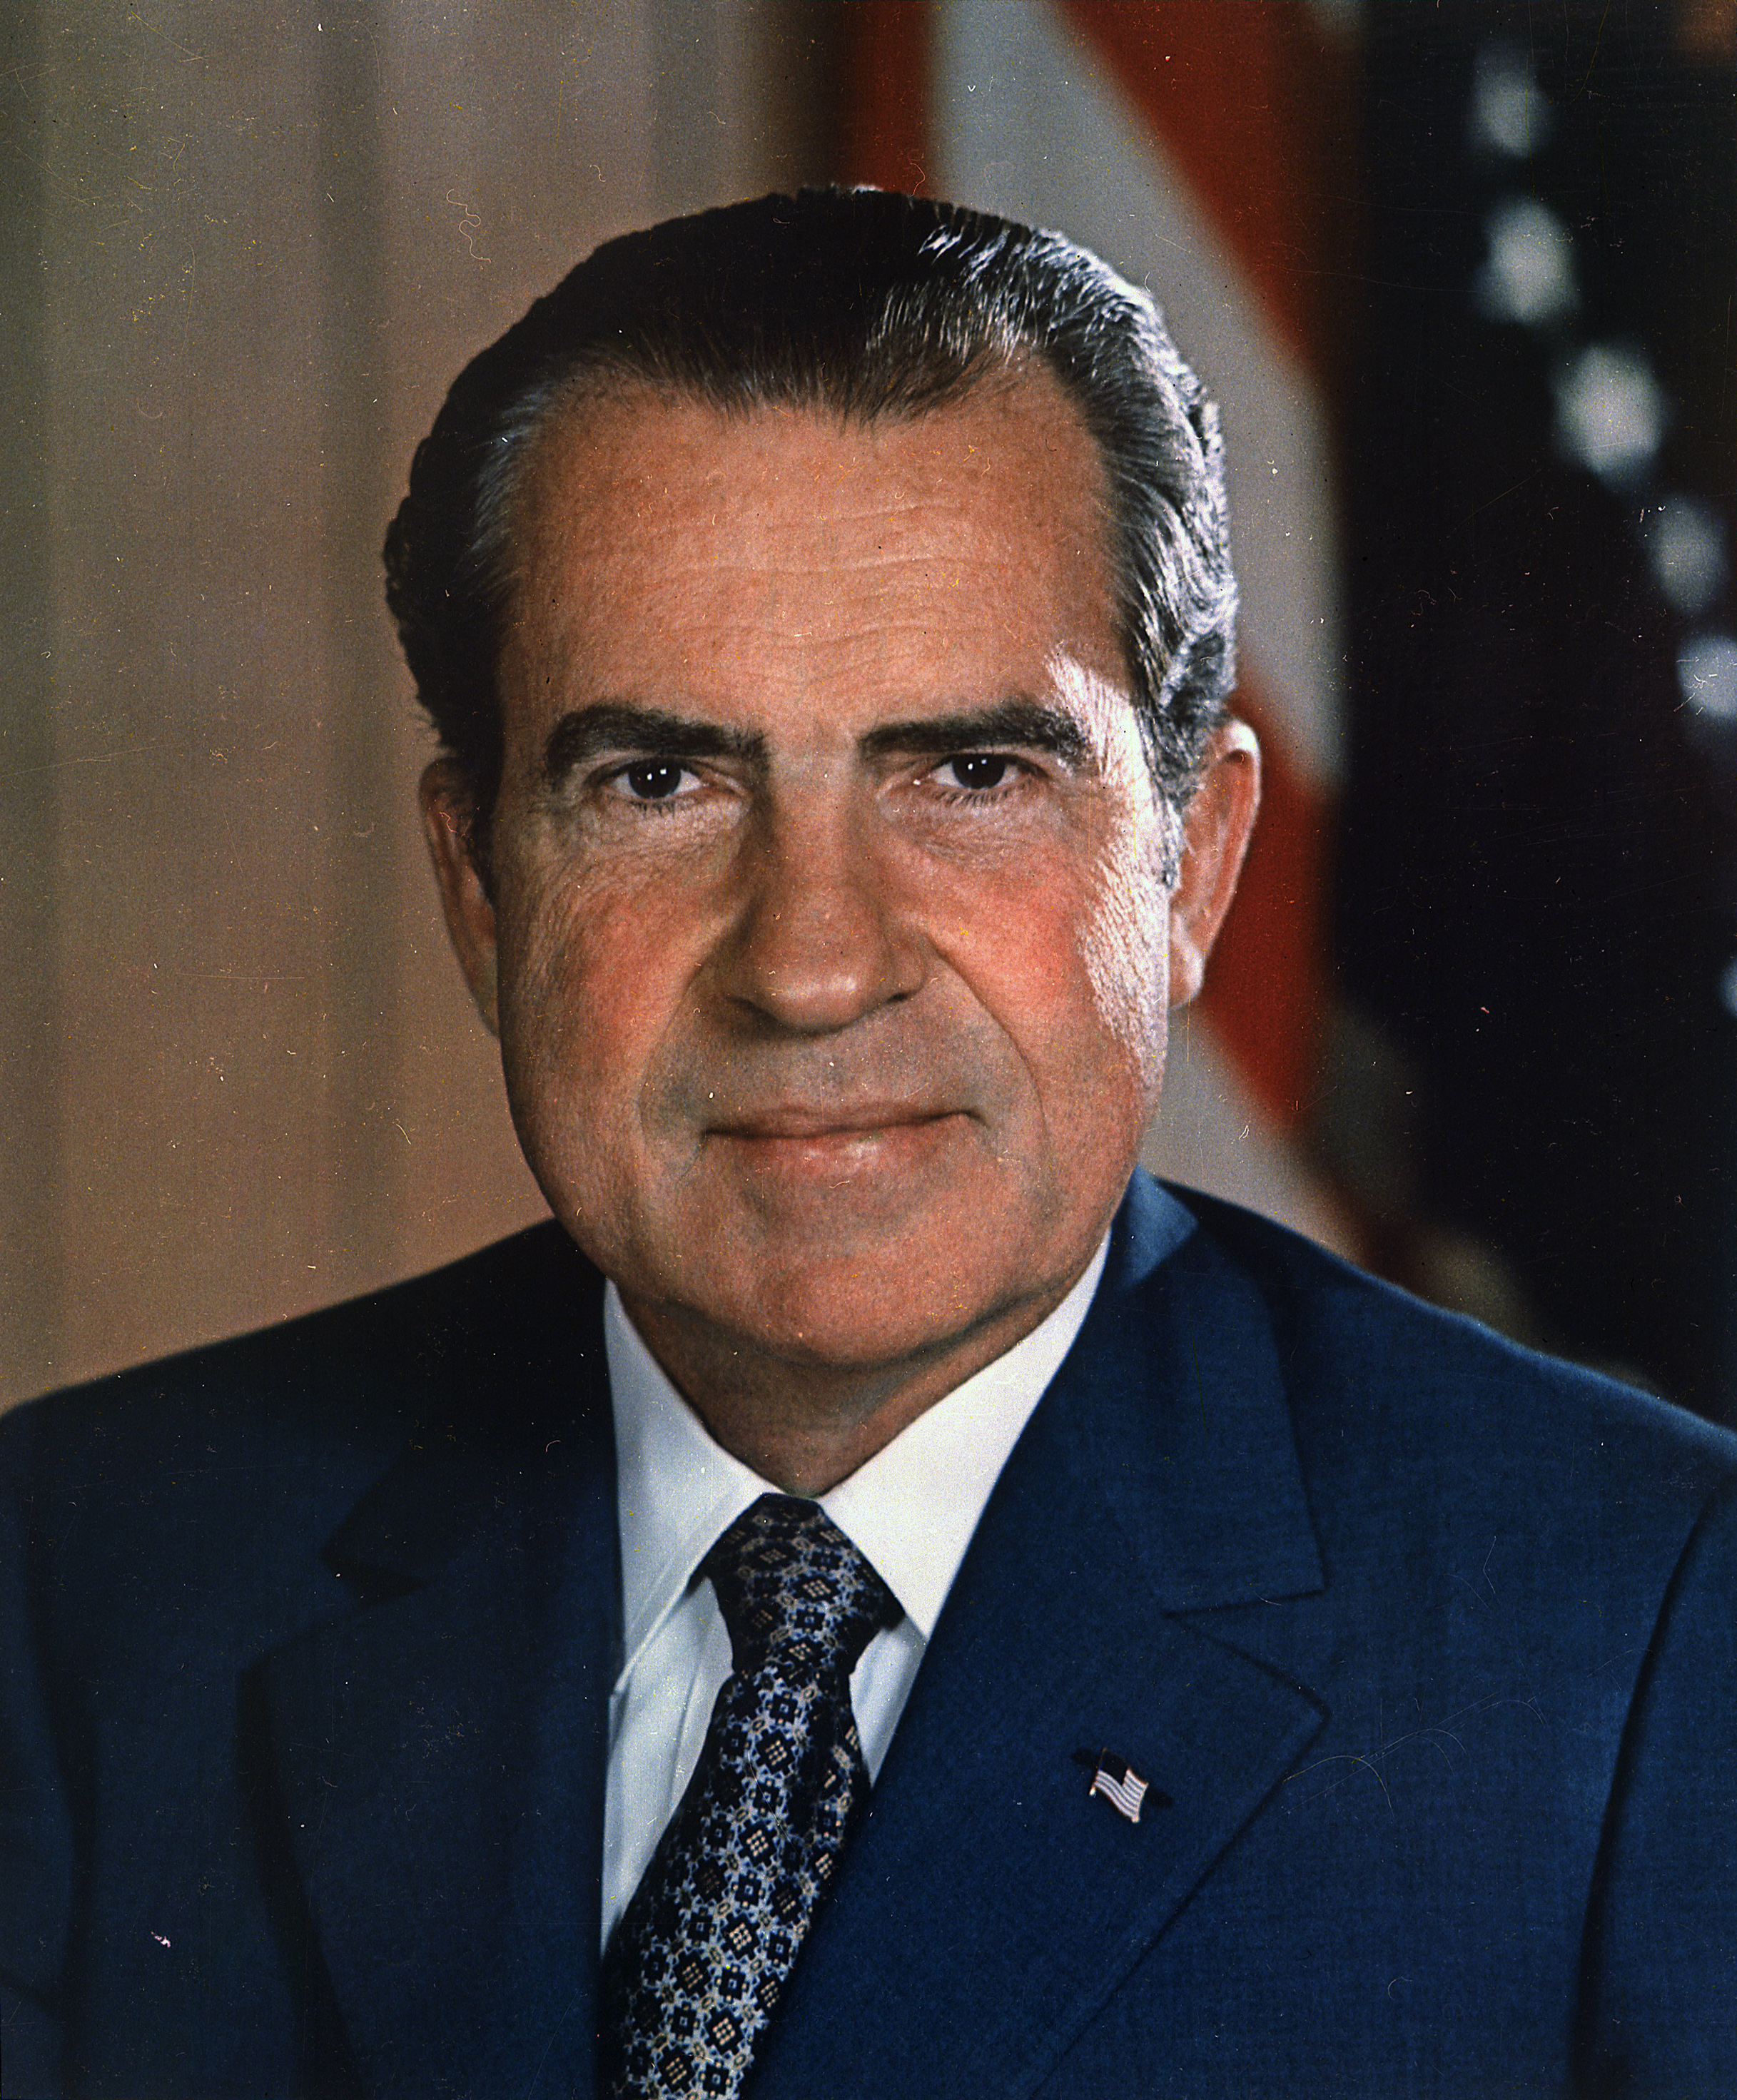 Richard Nixon Headshot